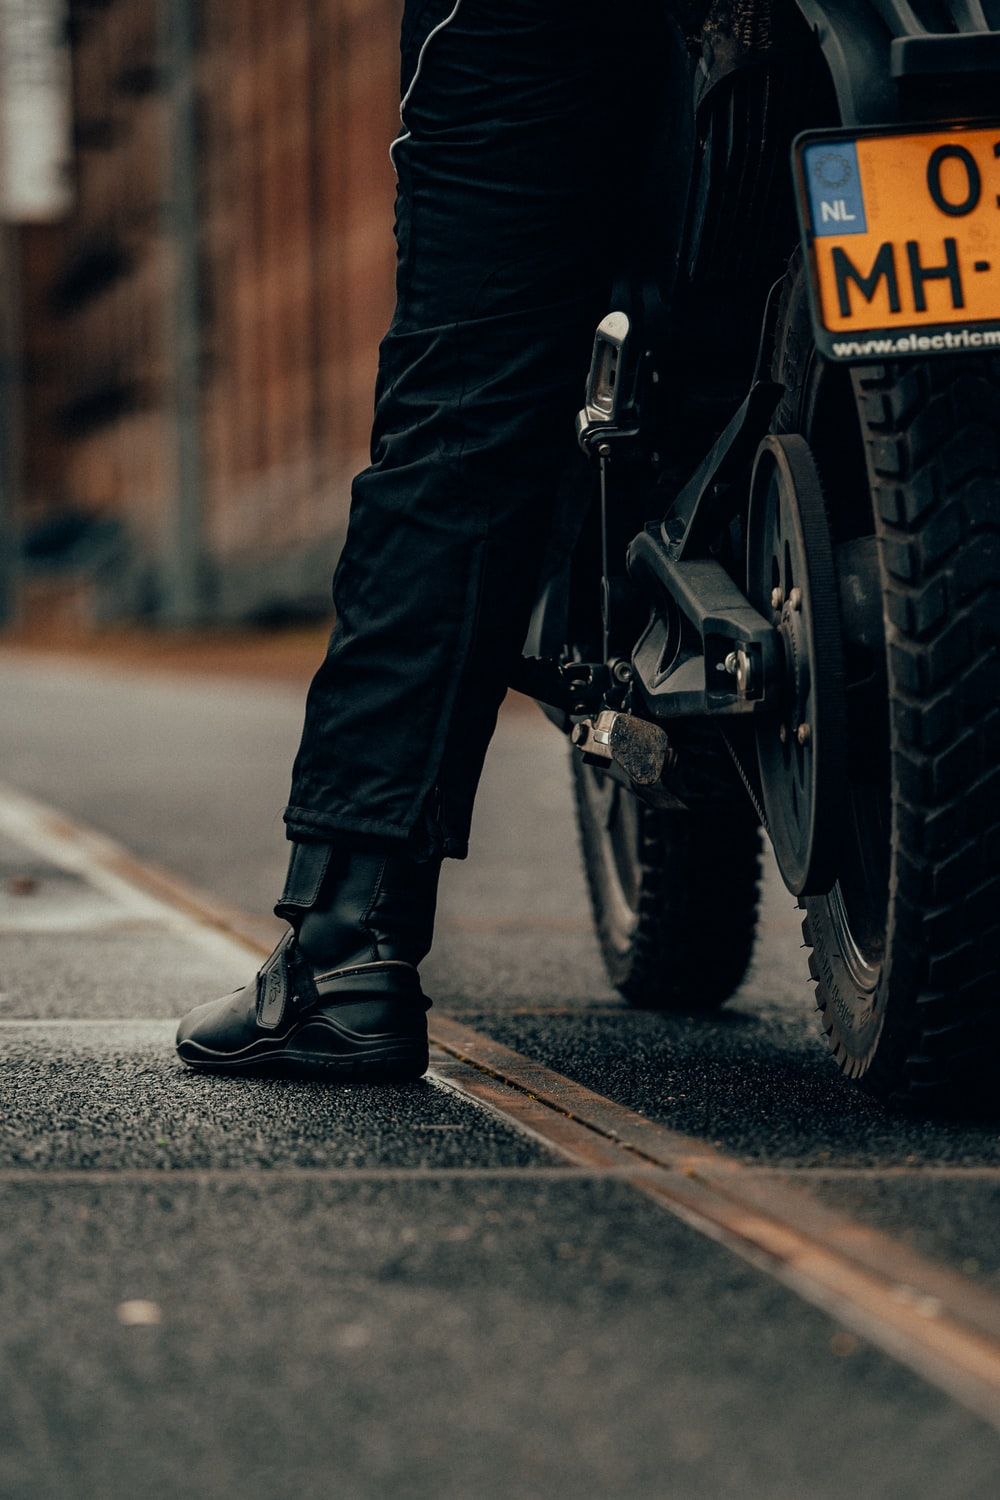 person in black leather boots riding motorcycle on road during daytime